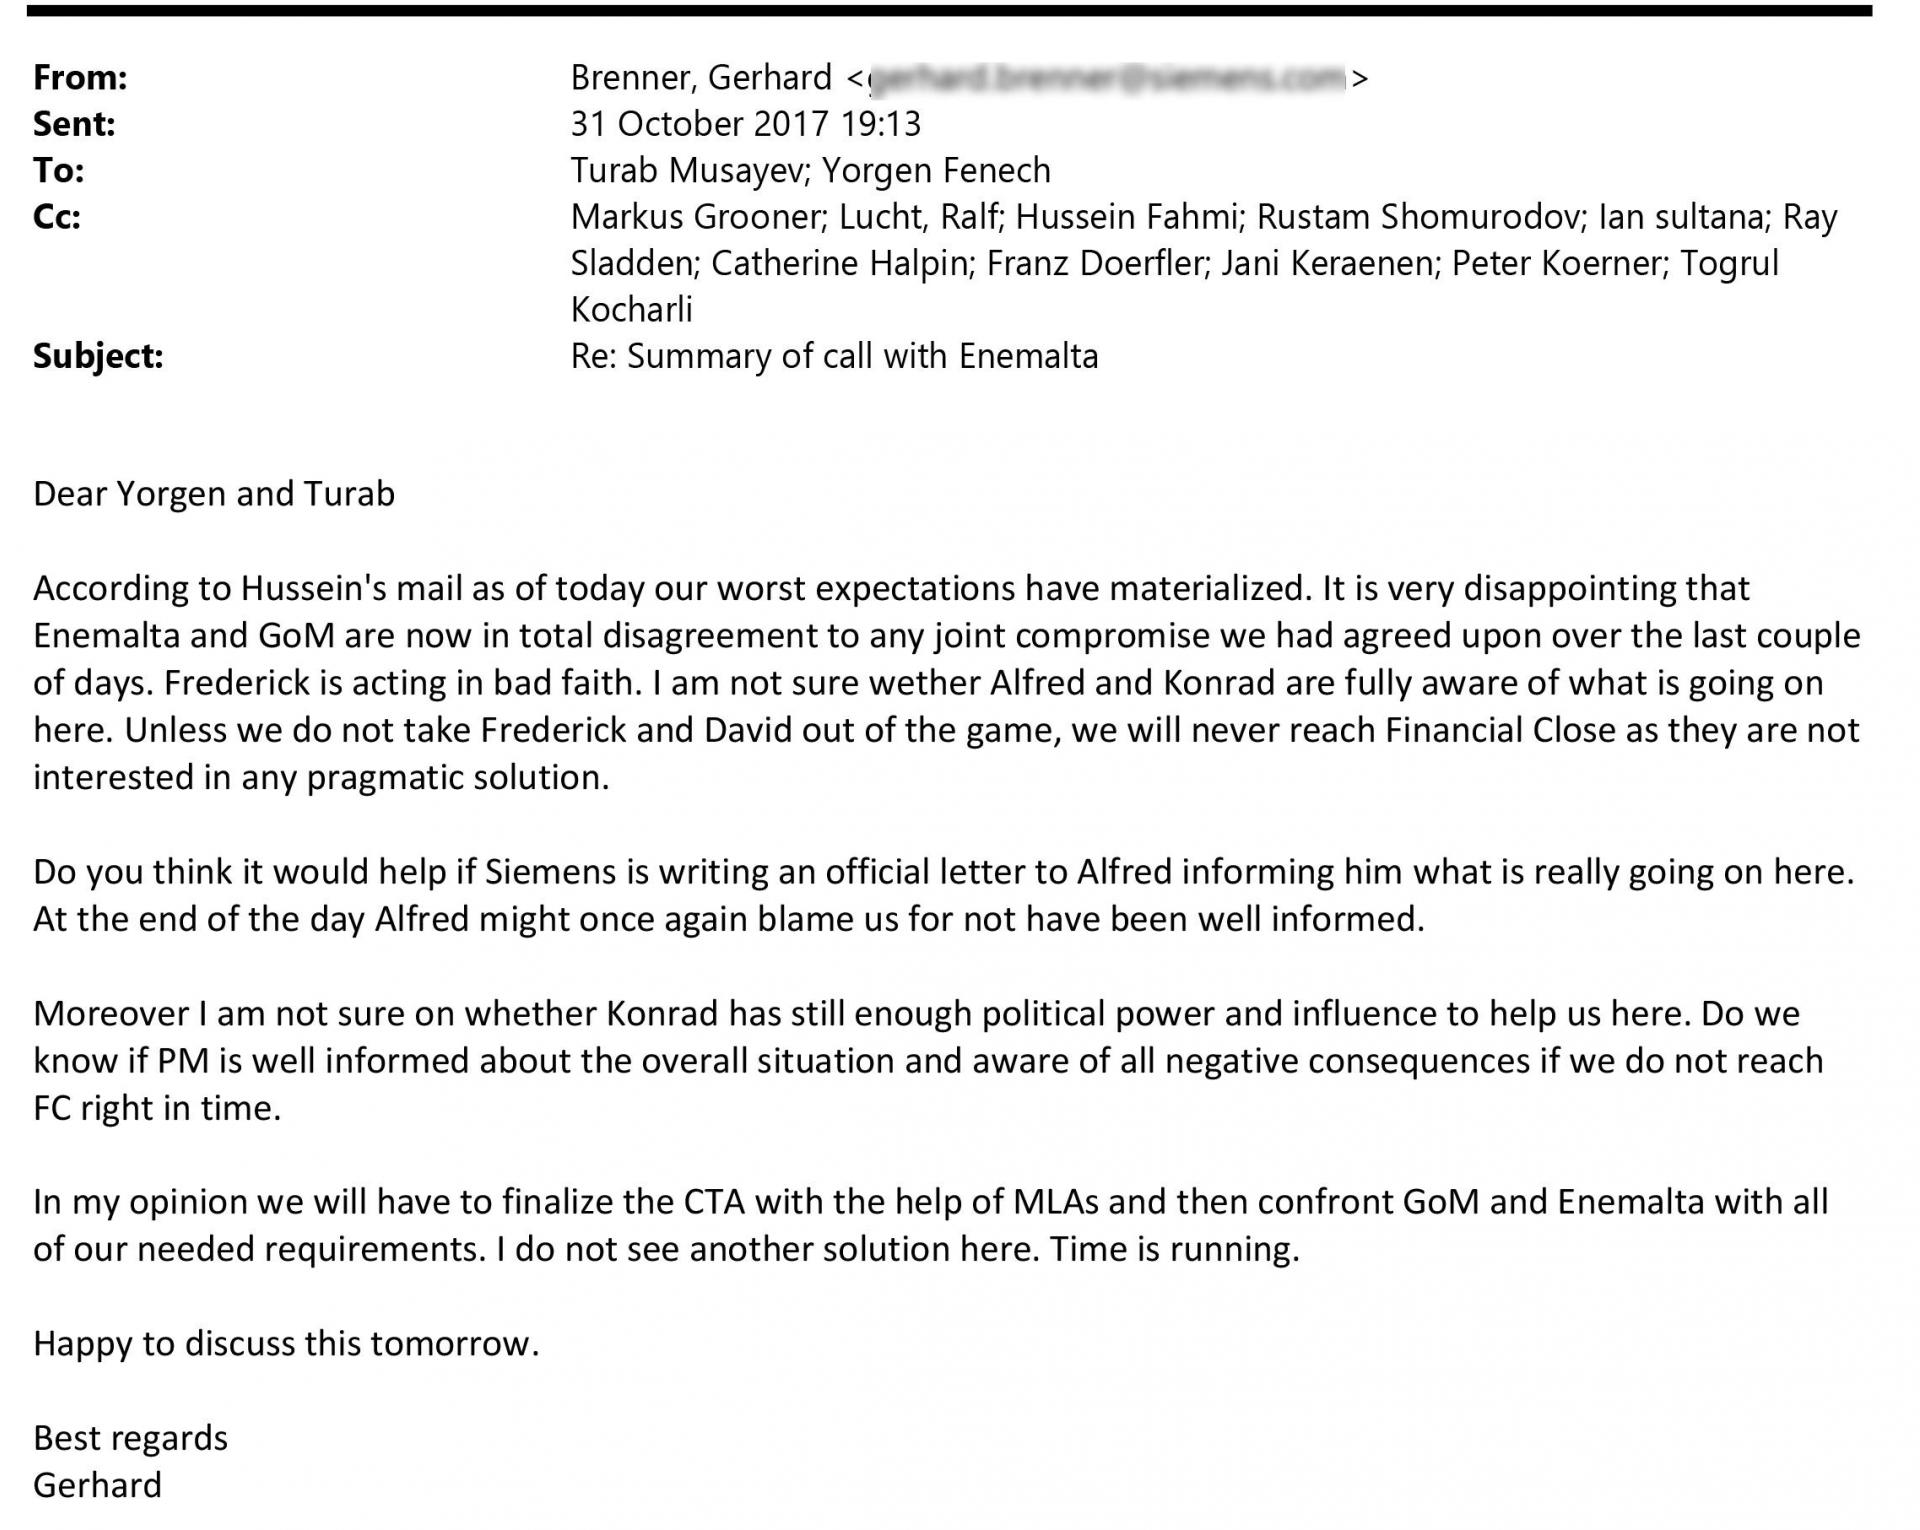 An email sent by Gerhard Brenner on October 31, 2017, in which he raised concerns over whether Konrad Mizzi still had enough clout to help Electrogas.